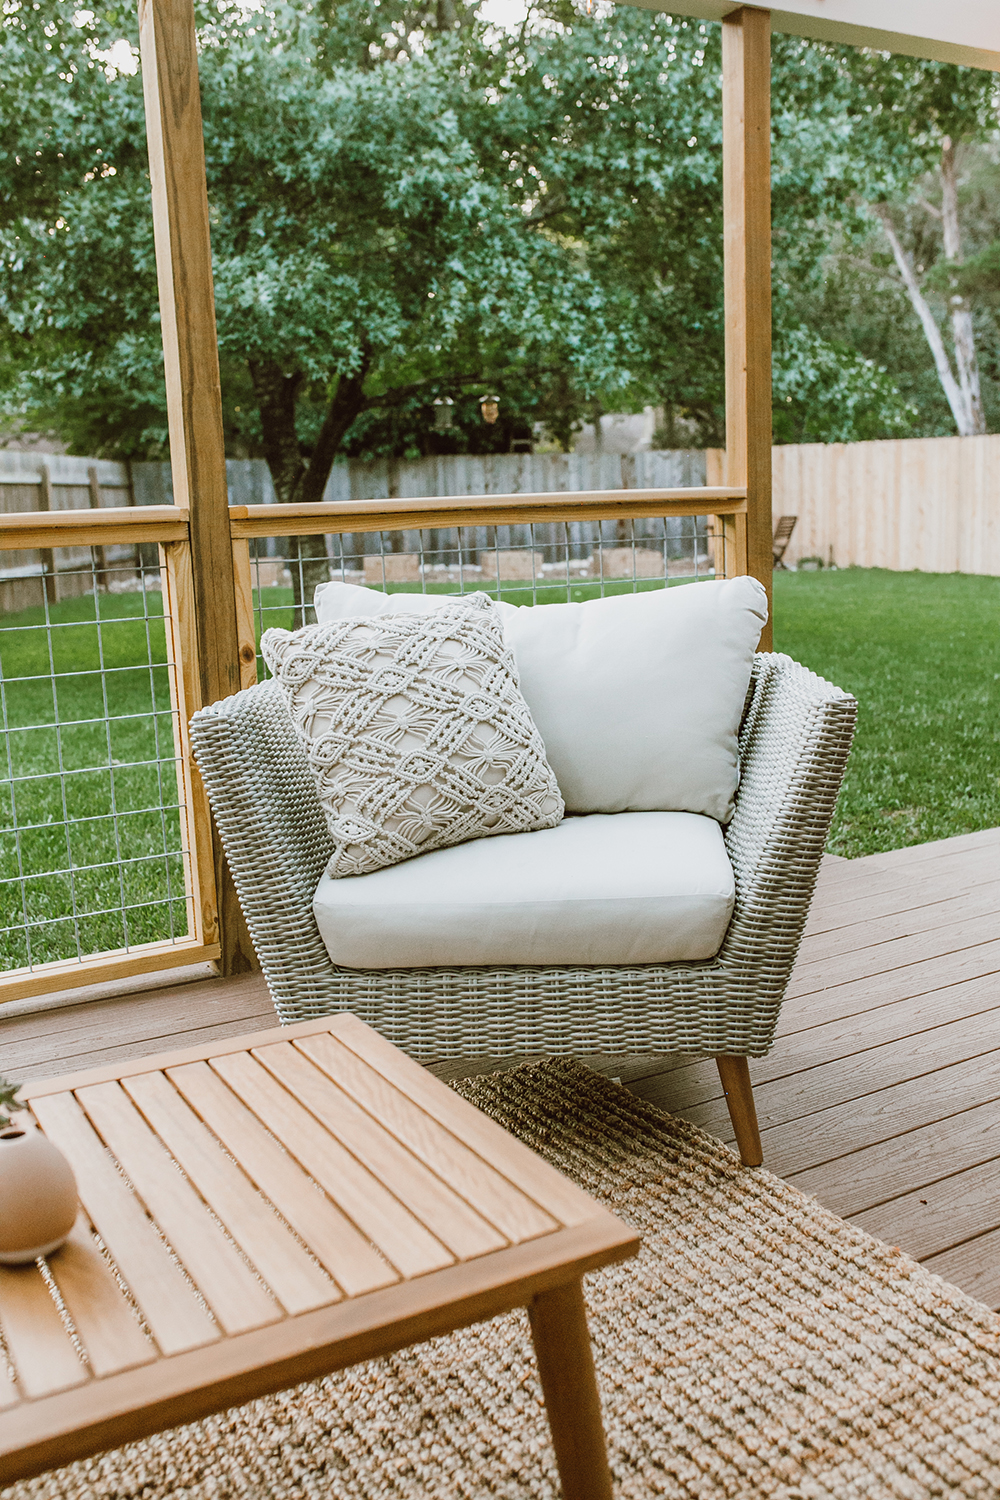 livvyland-blog-olivia-watson-before-after-outside-patio-renovation-reveal-furniture-austin-texas-lifestyle-blogger-21